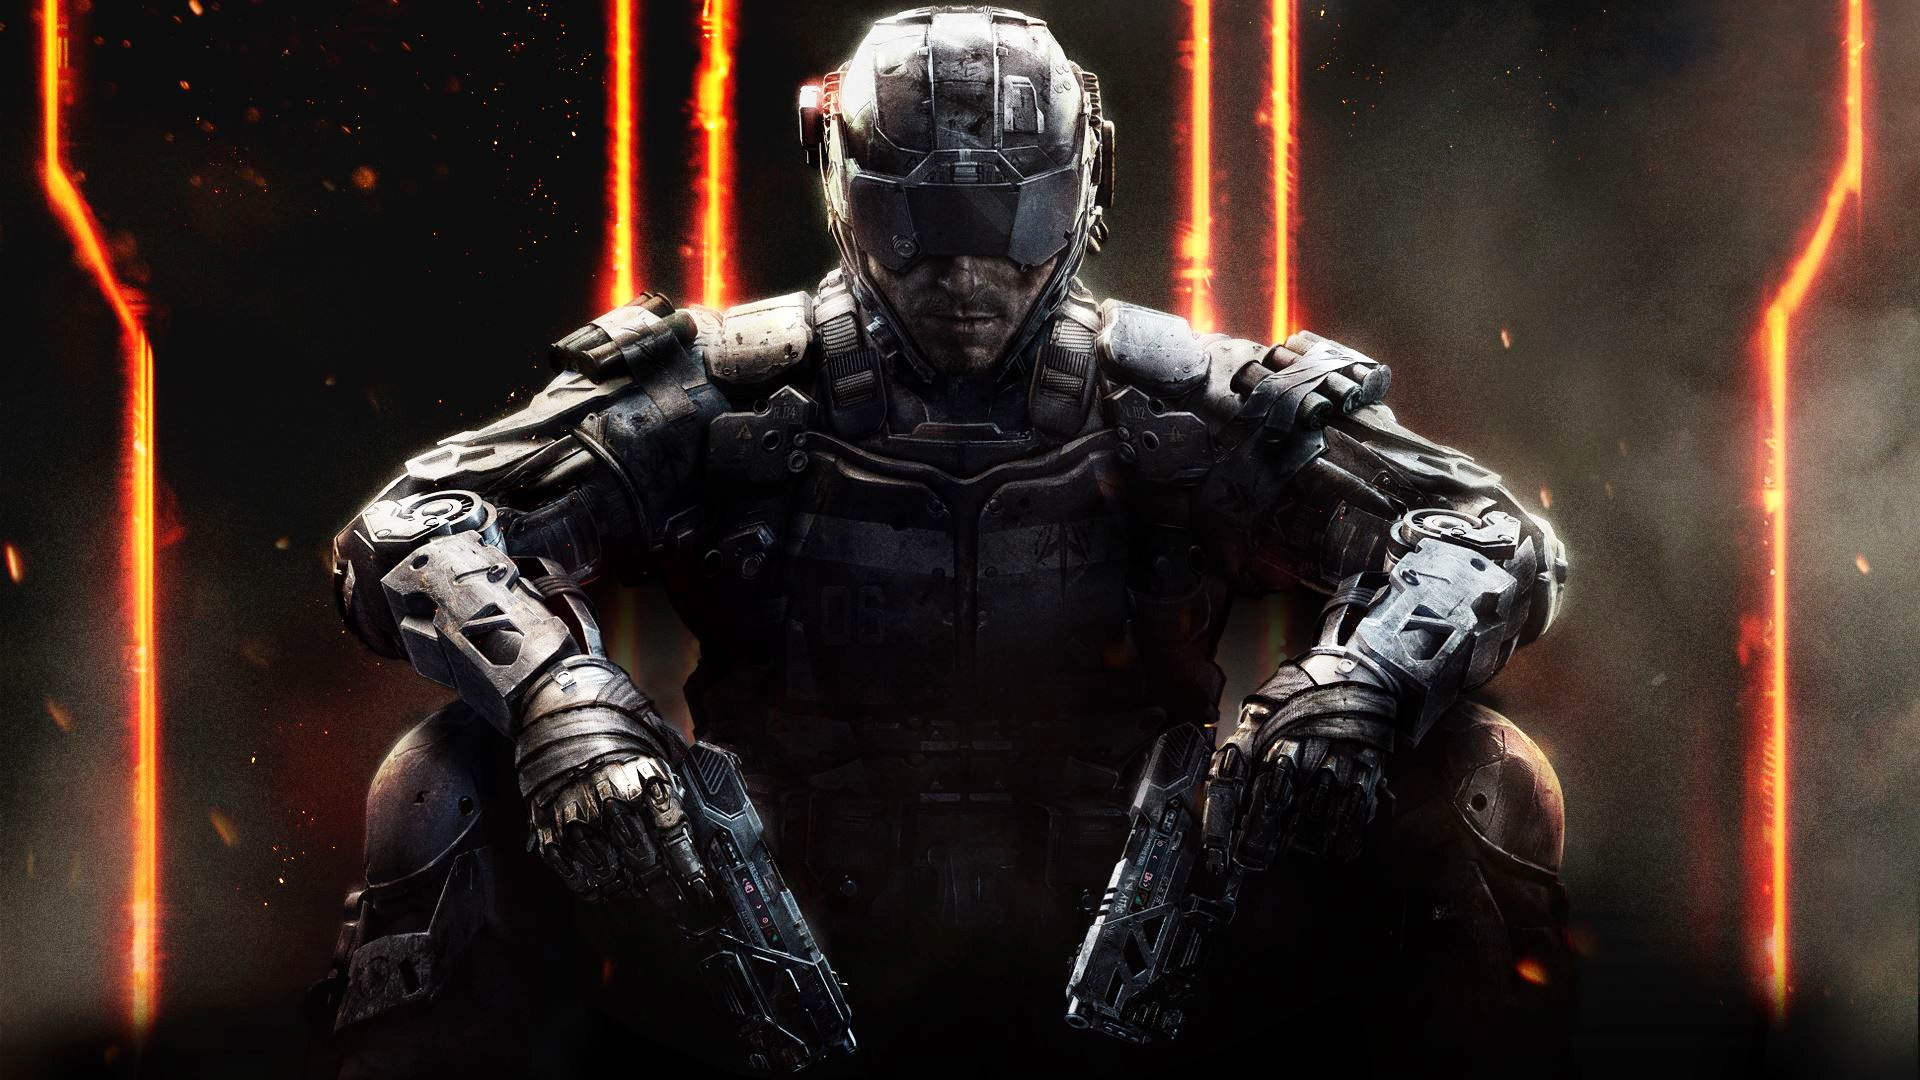 … Call of Duty: Black Ops 3 Wallpapers …